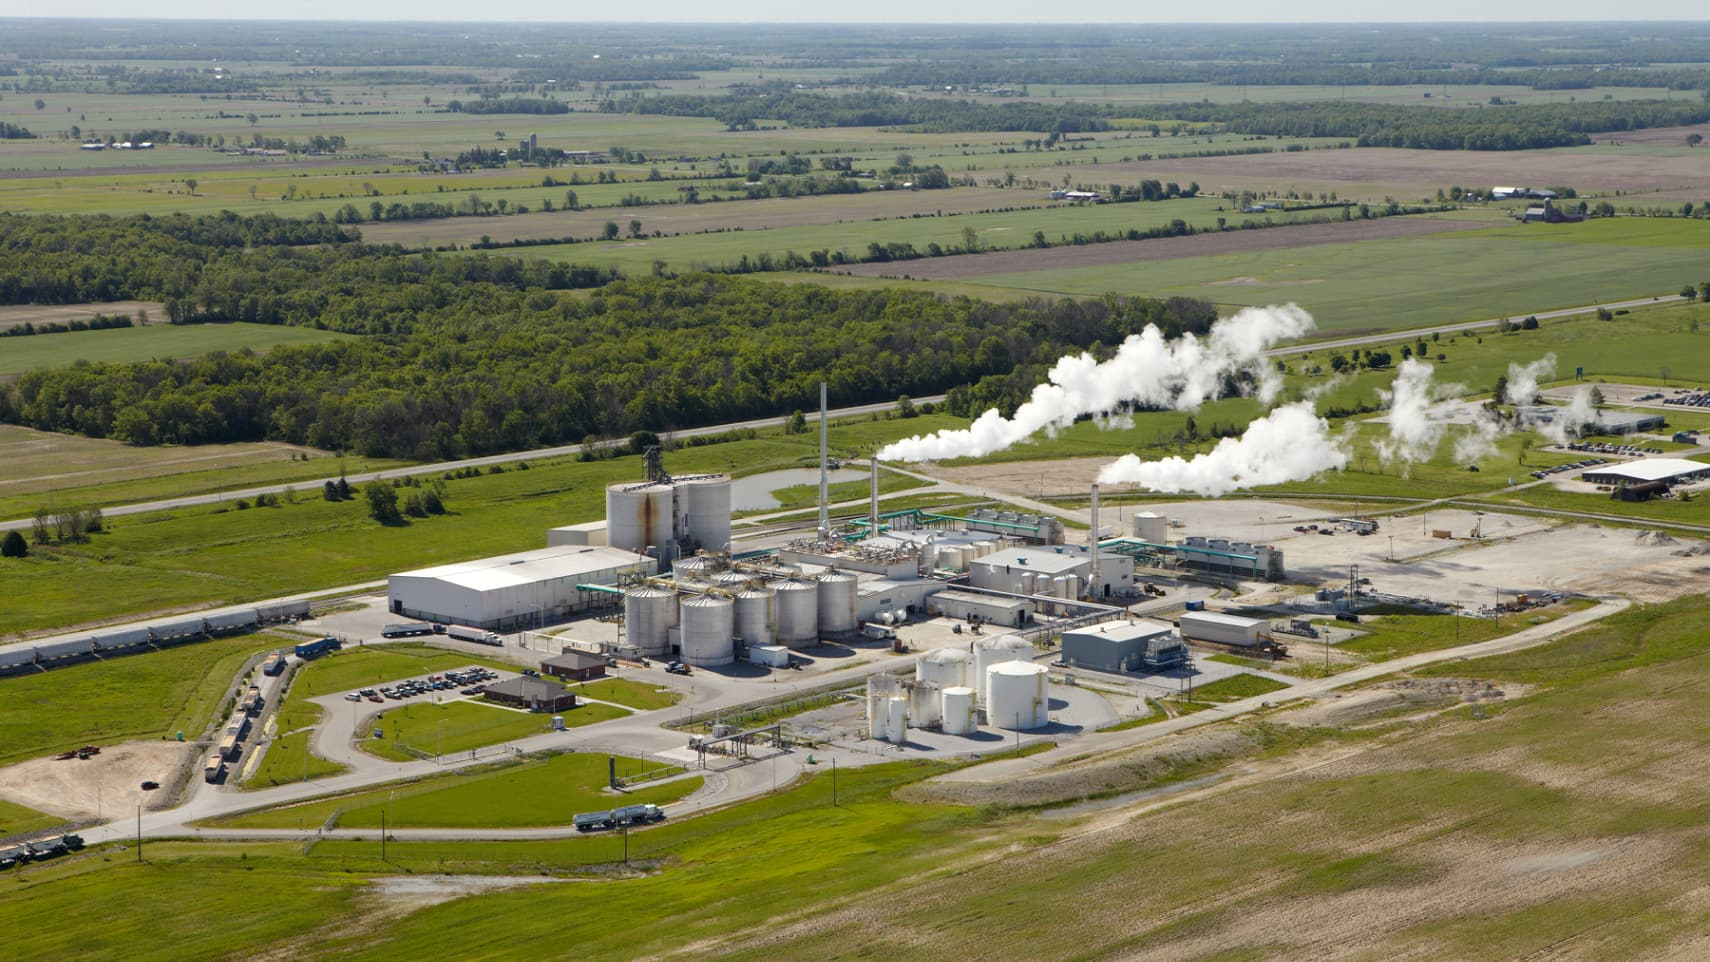 A bird's eye view of the St. Clair Ethanol Plant